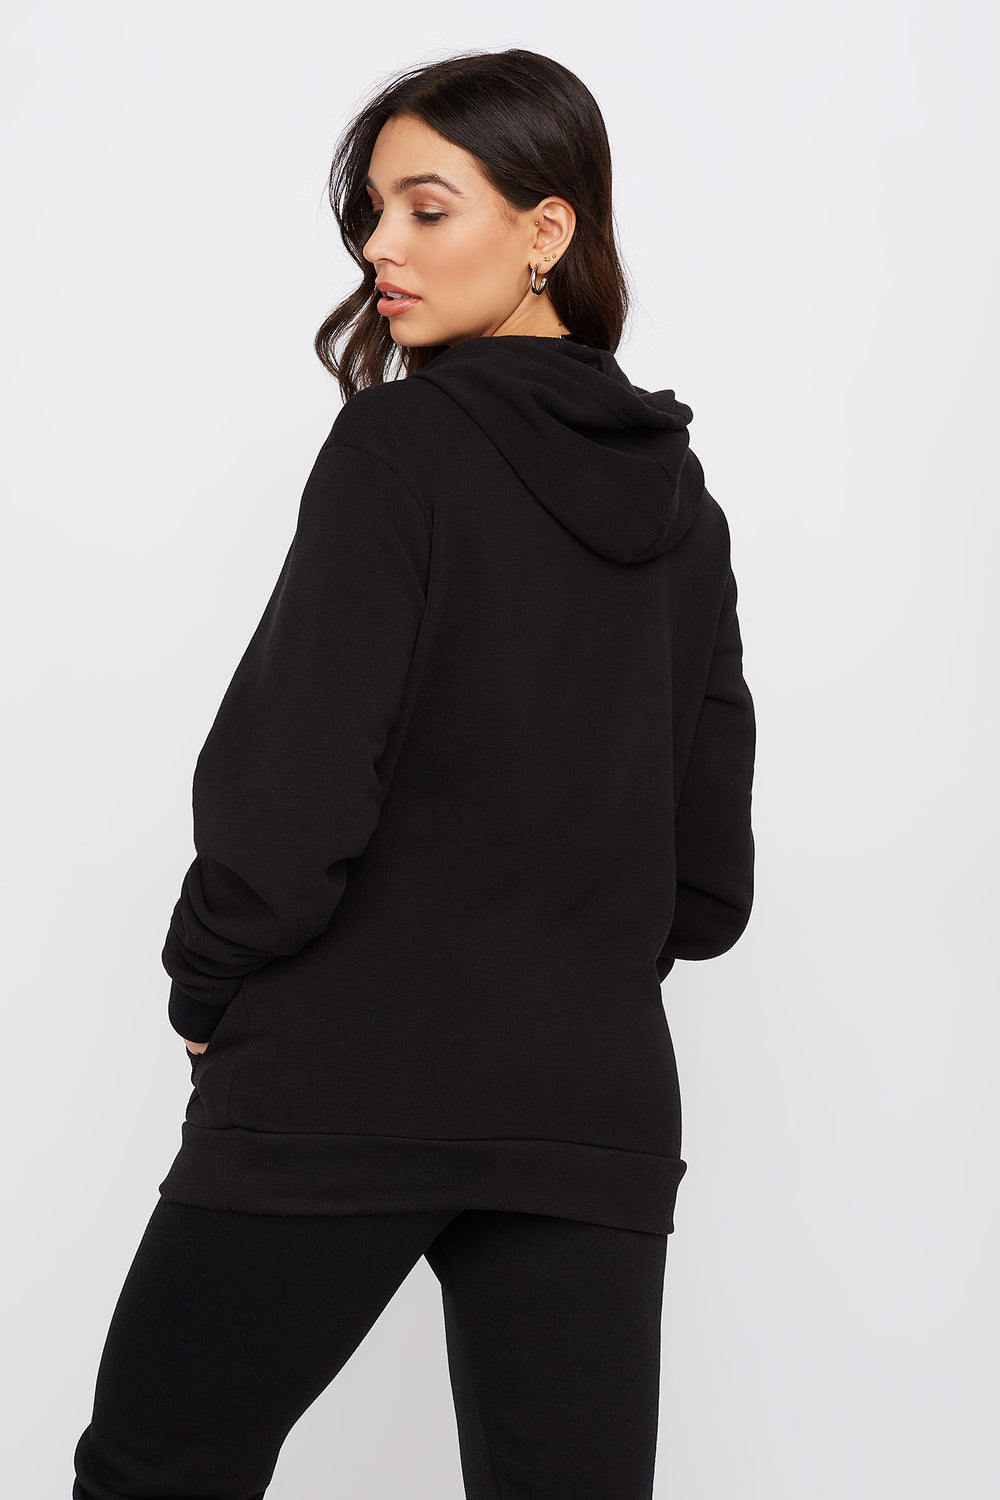 Embroidered Graphic Hoodie Black